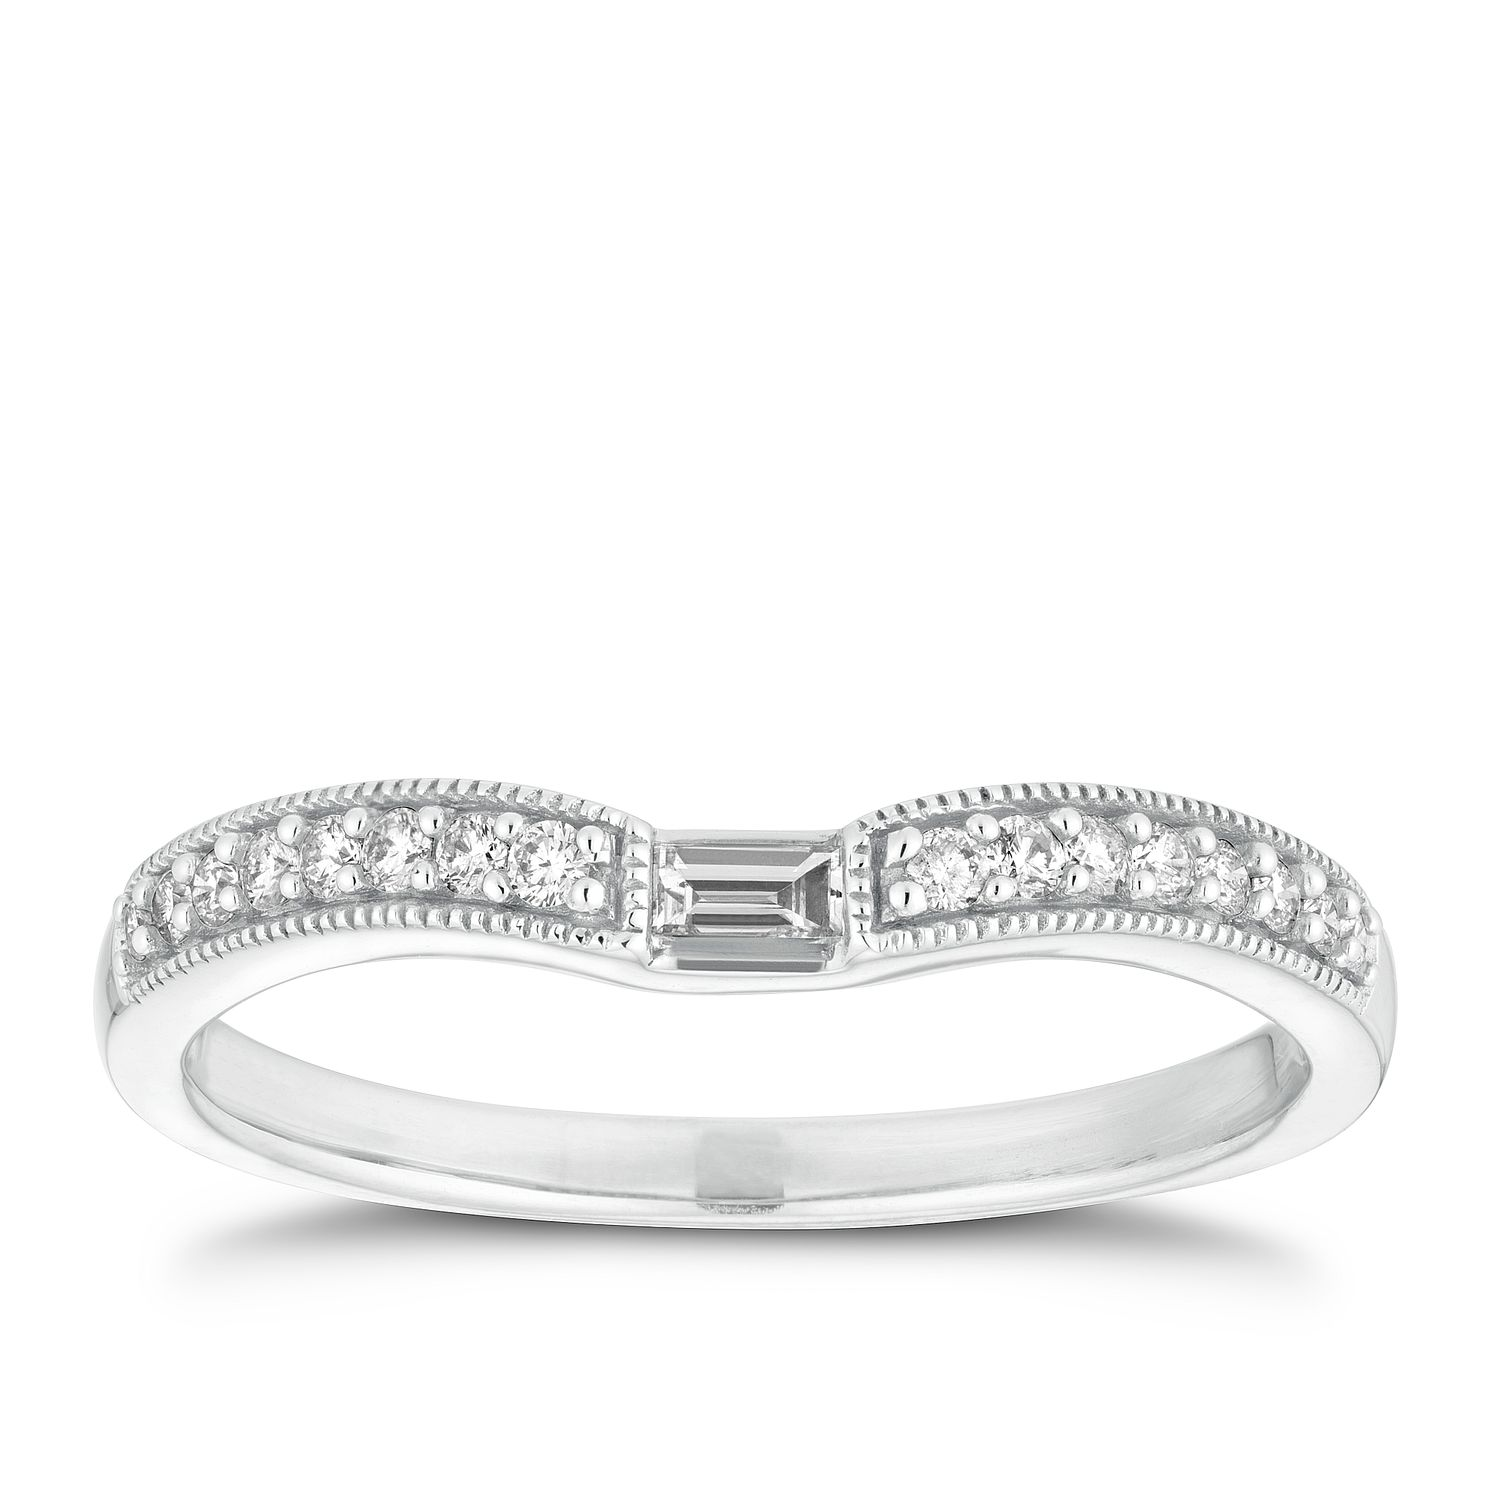 18ct White Gold 0.12ct Baguette Diamond Milgrain Ring - Product number 2935015